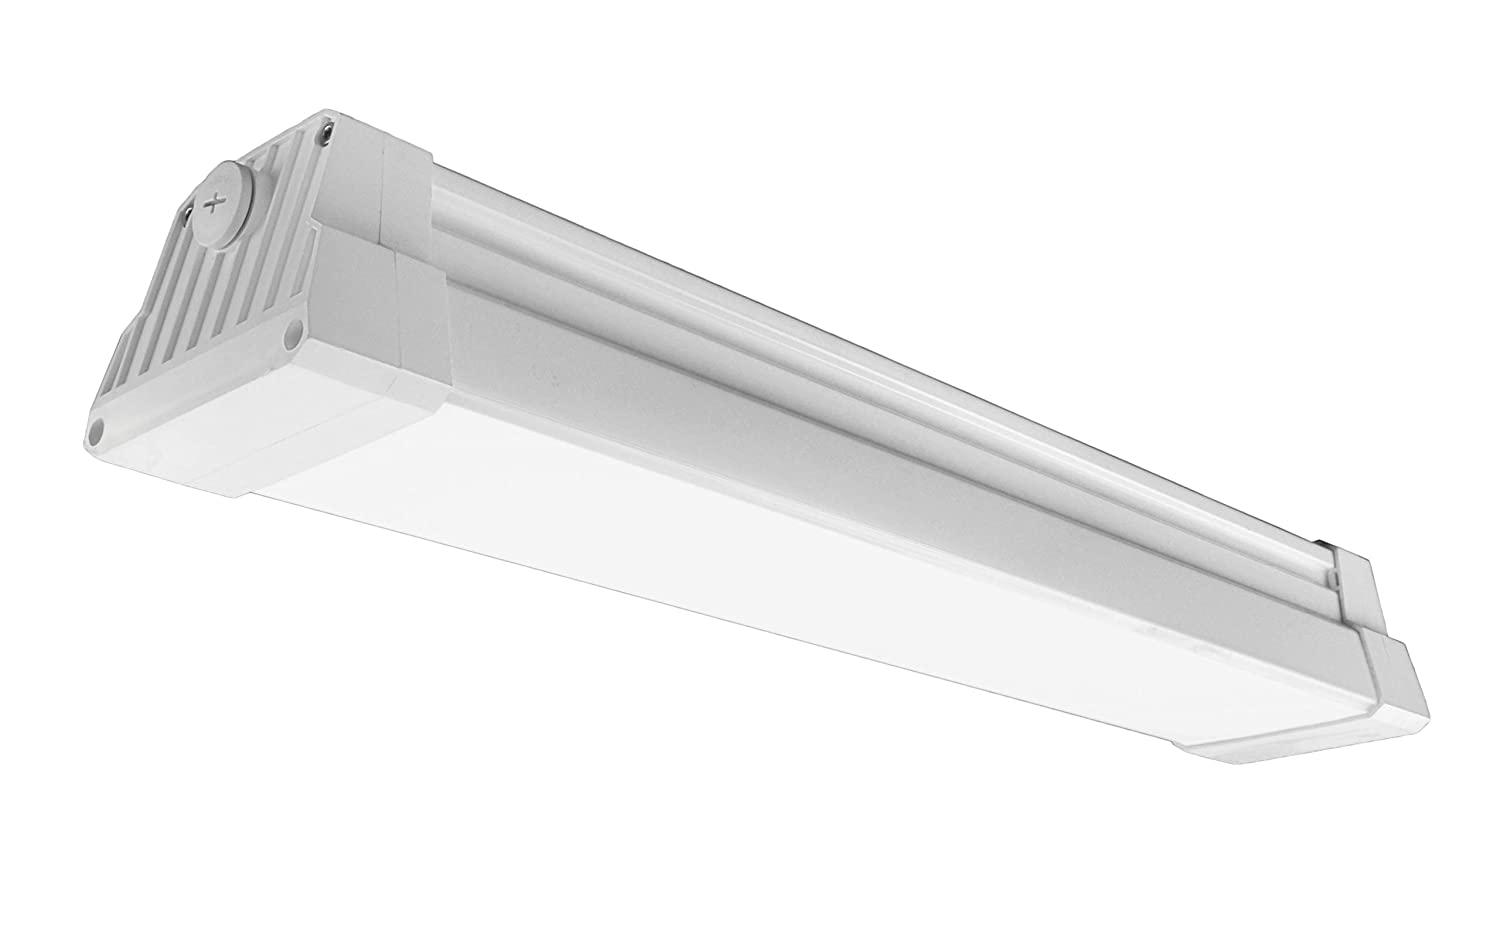 Lithonia Lighting Industrial 2-Extreme Light Outdoor Fluorescent Hanging Fixture